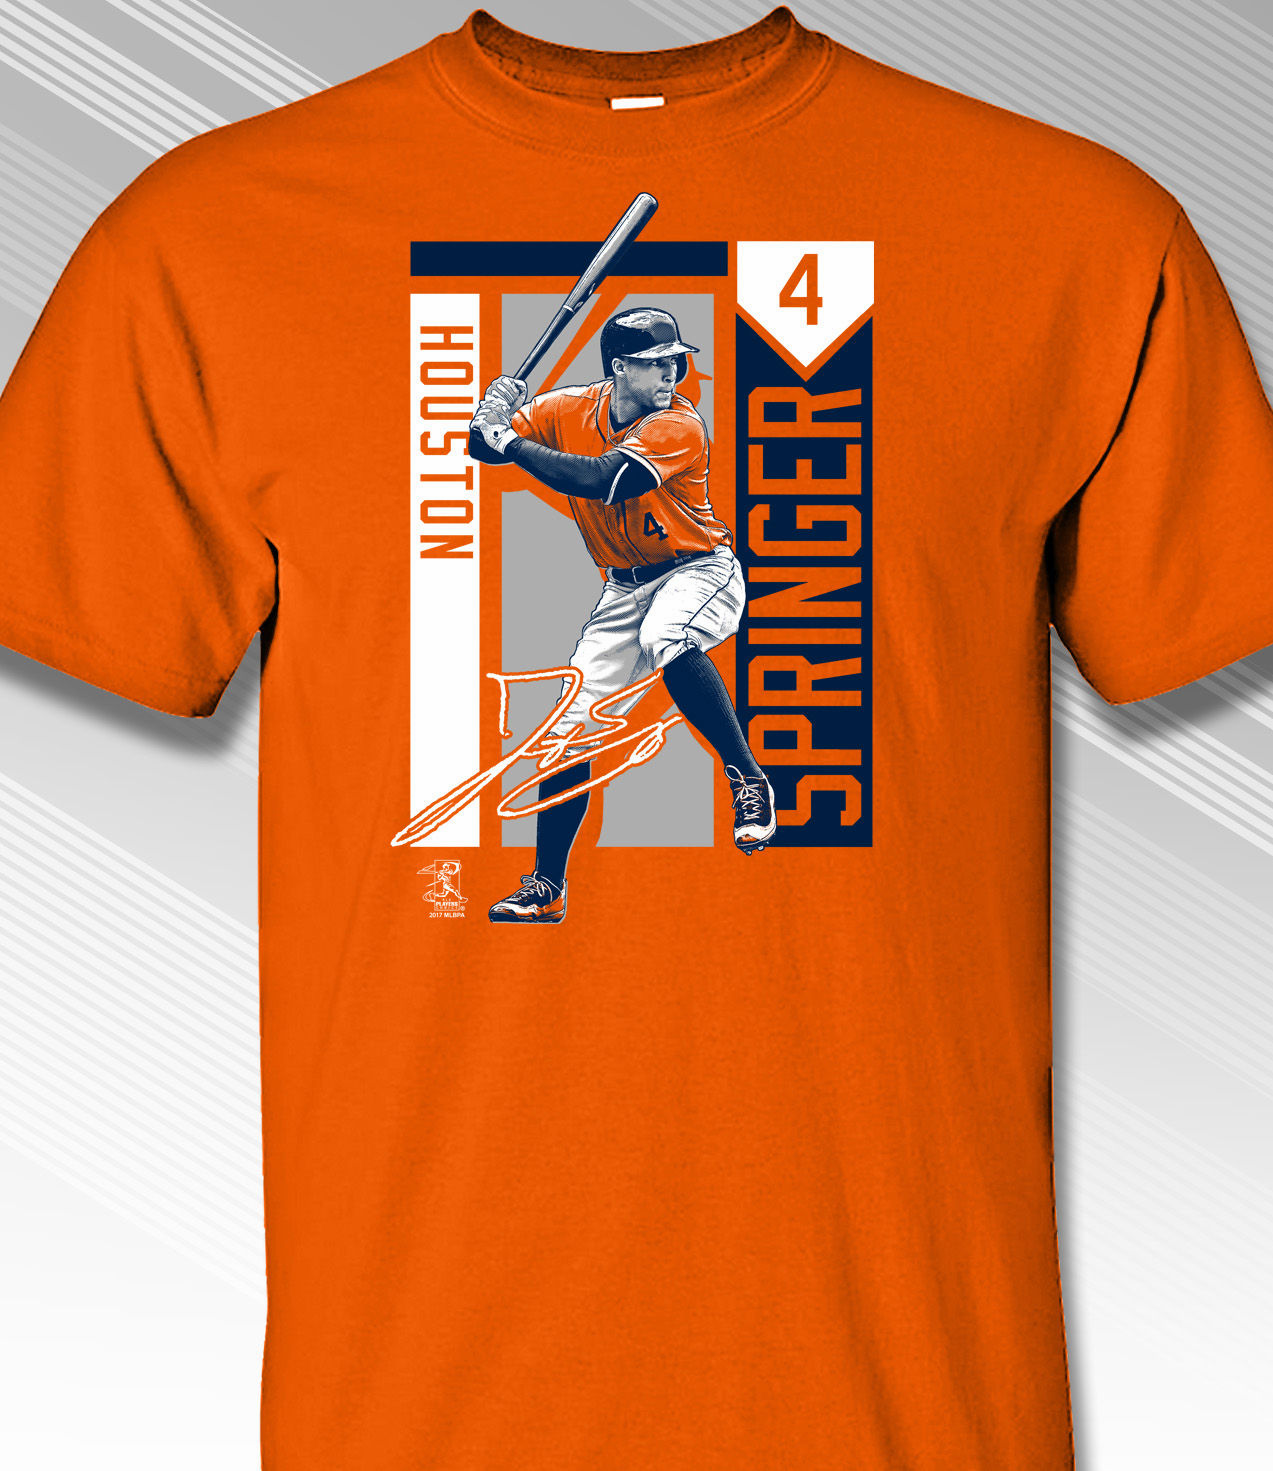 George Springer Houston Colorblock T-Shirt<br>Orange or Navy Blue<br>Short or Long Sleeve<br>Youth Med to Adult 4X